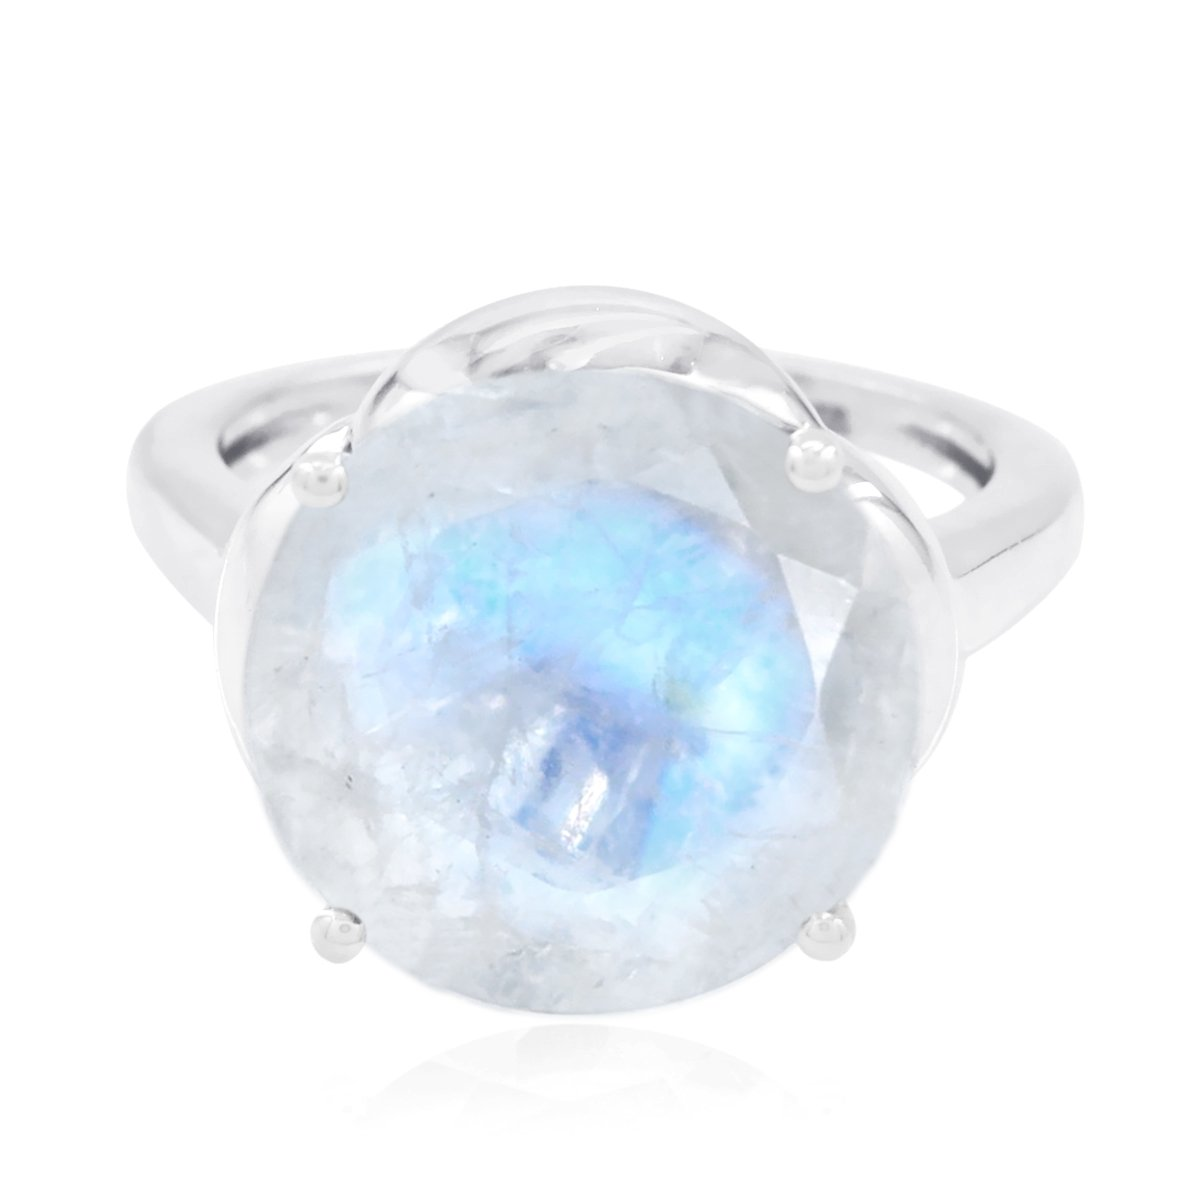 Real Gemstones Round Faceted RainbowMoonstones Ring - Fashion Silber White RainbowMoonstones Real Gemstones Ring - Great Jewelry Greatest Item Gift for Friend US 8.75